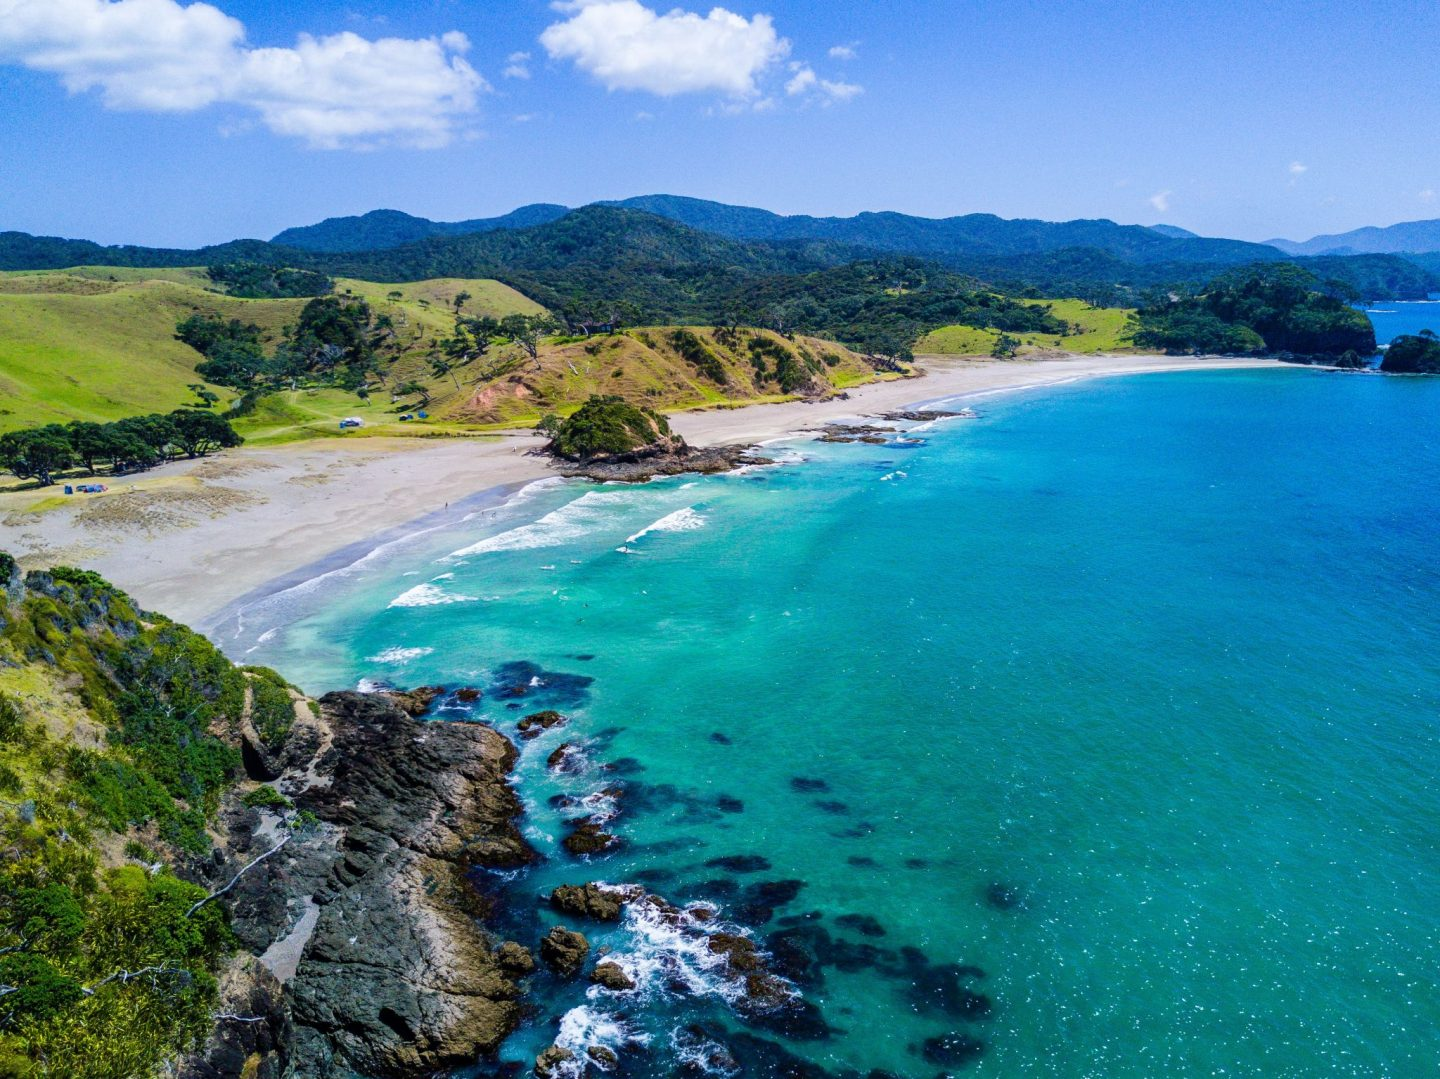 Travel wish list: New Zealand